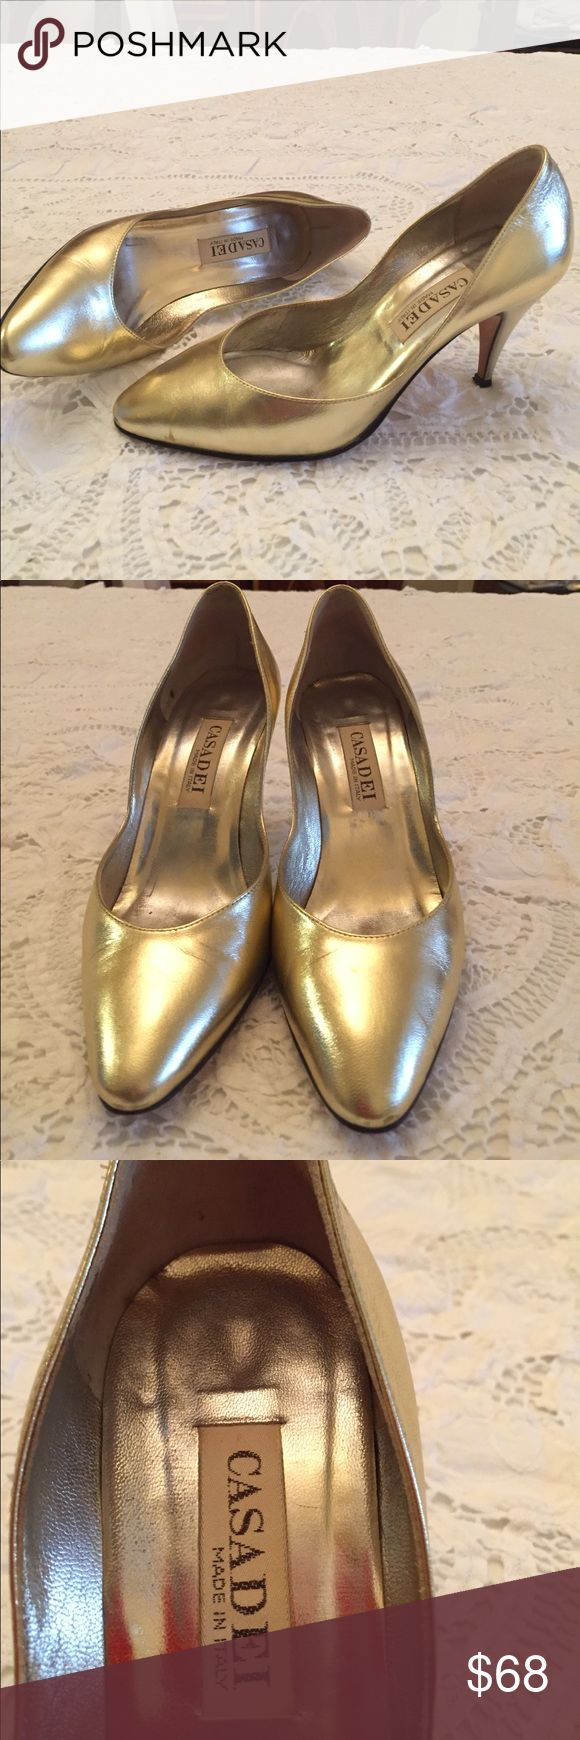 Casadei gold evening shoes Made in Italy. Size 7 casadei Shoes Heels